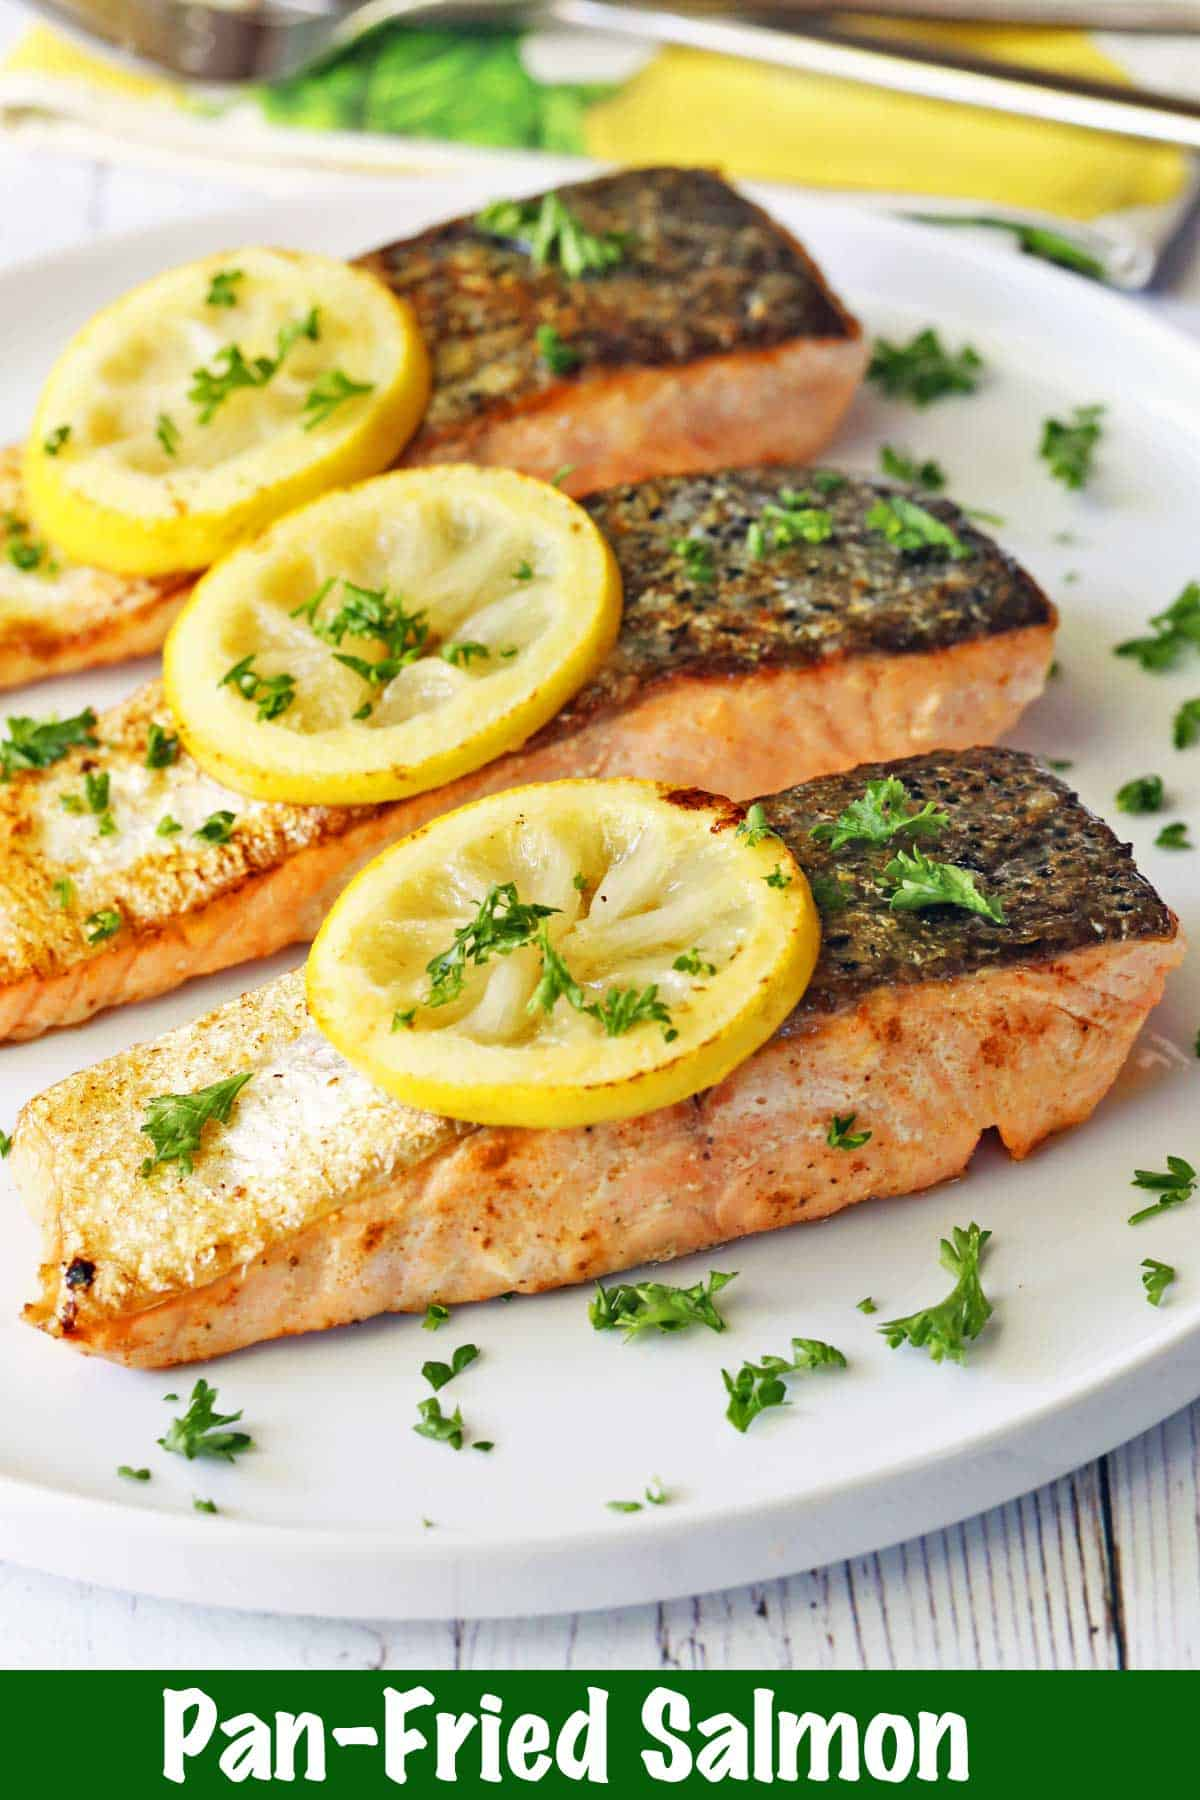 Three pan-fried salmon fillets topped with lemon slices and parsley.